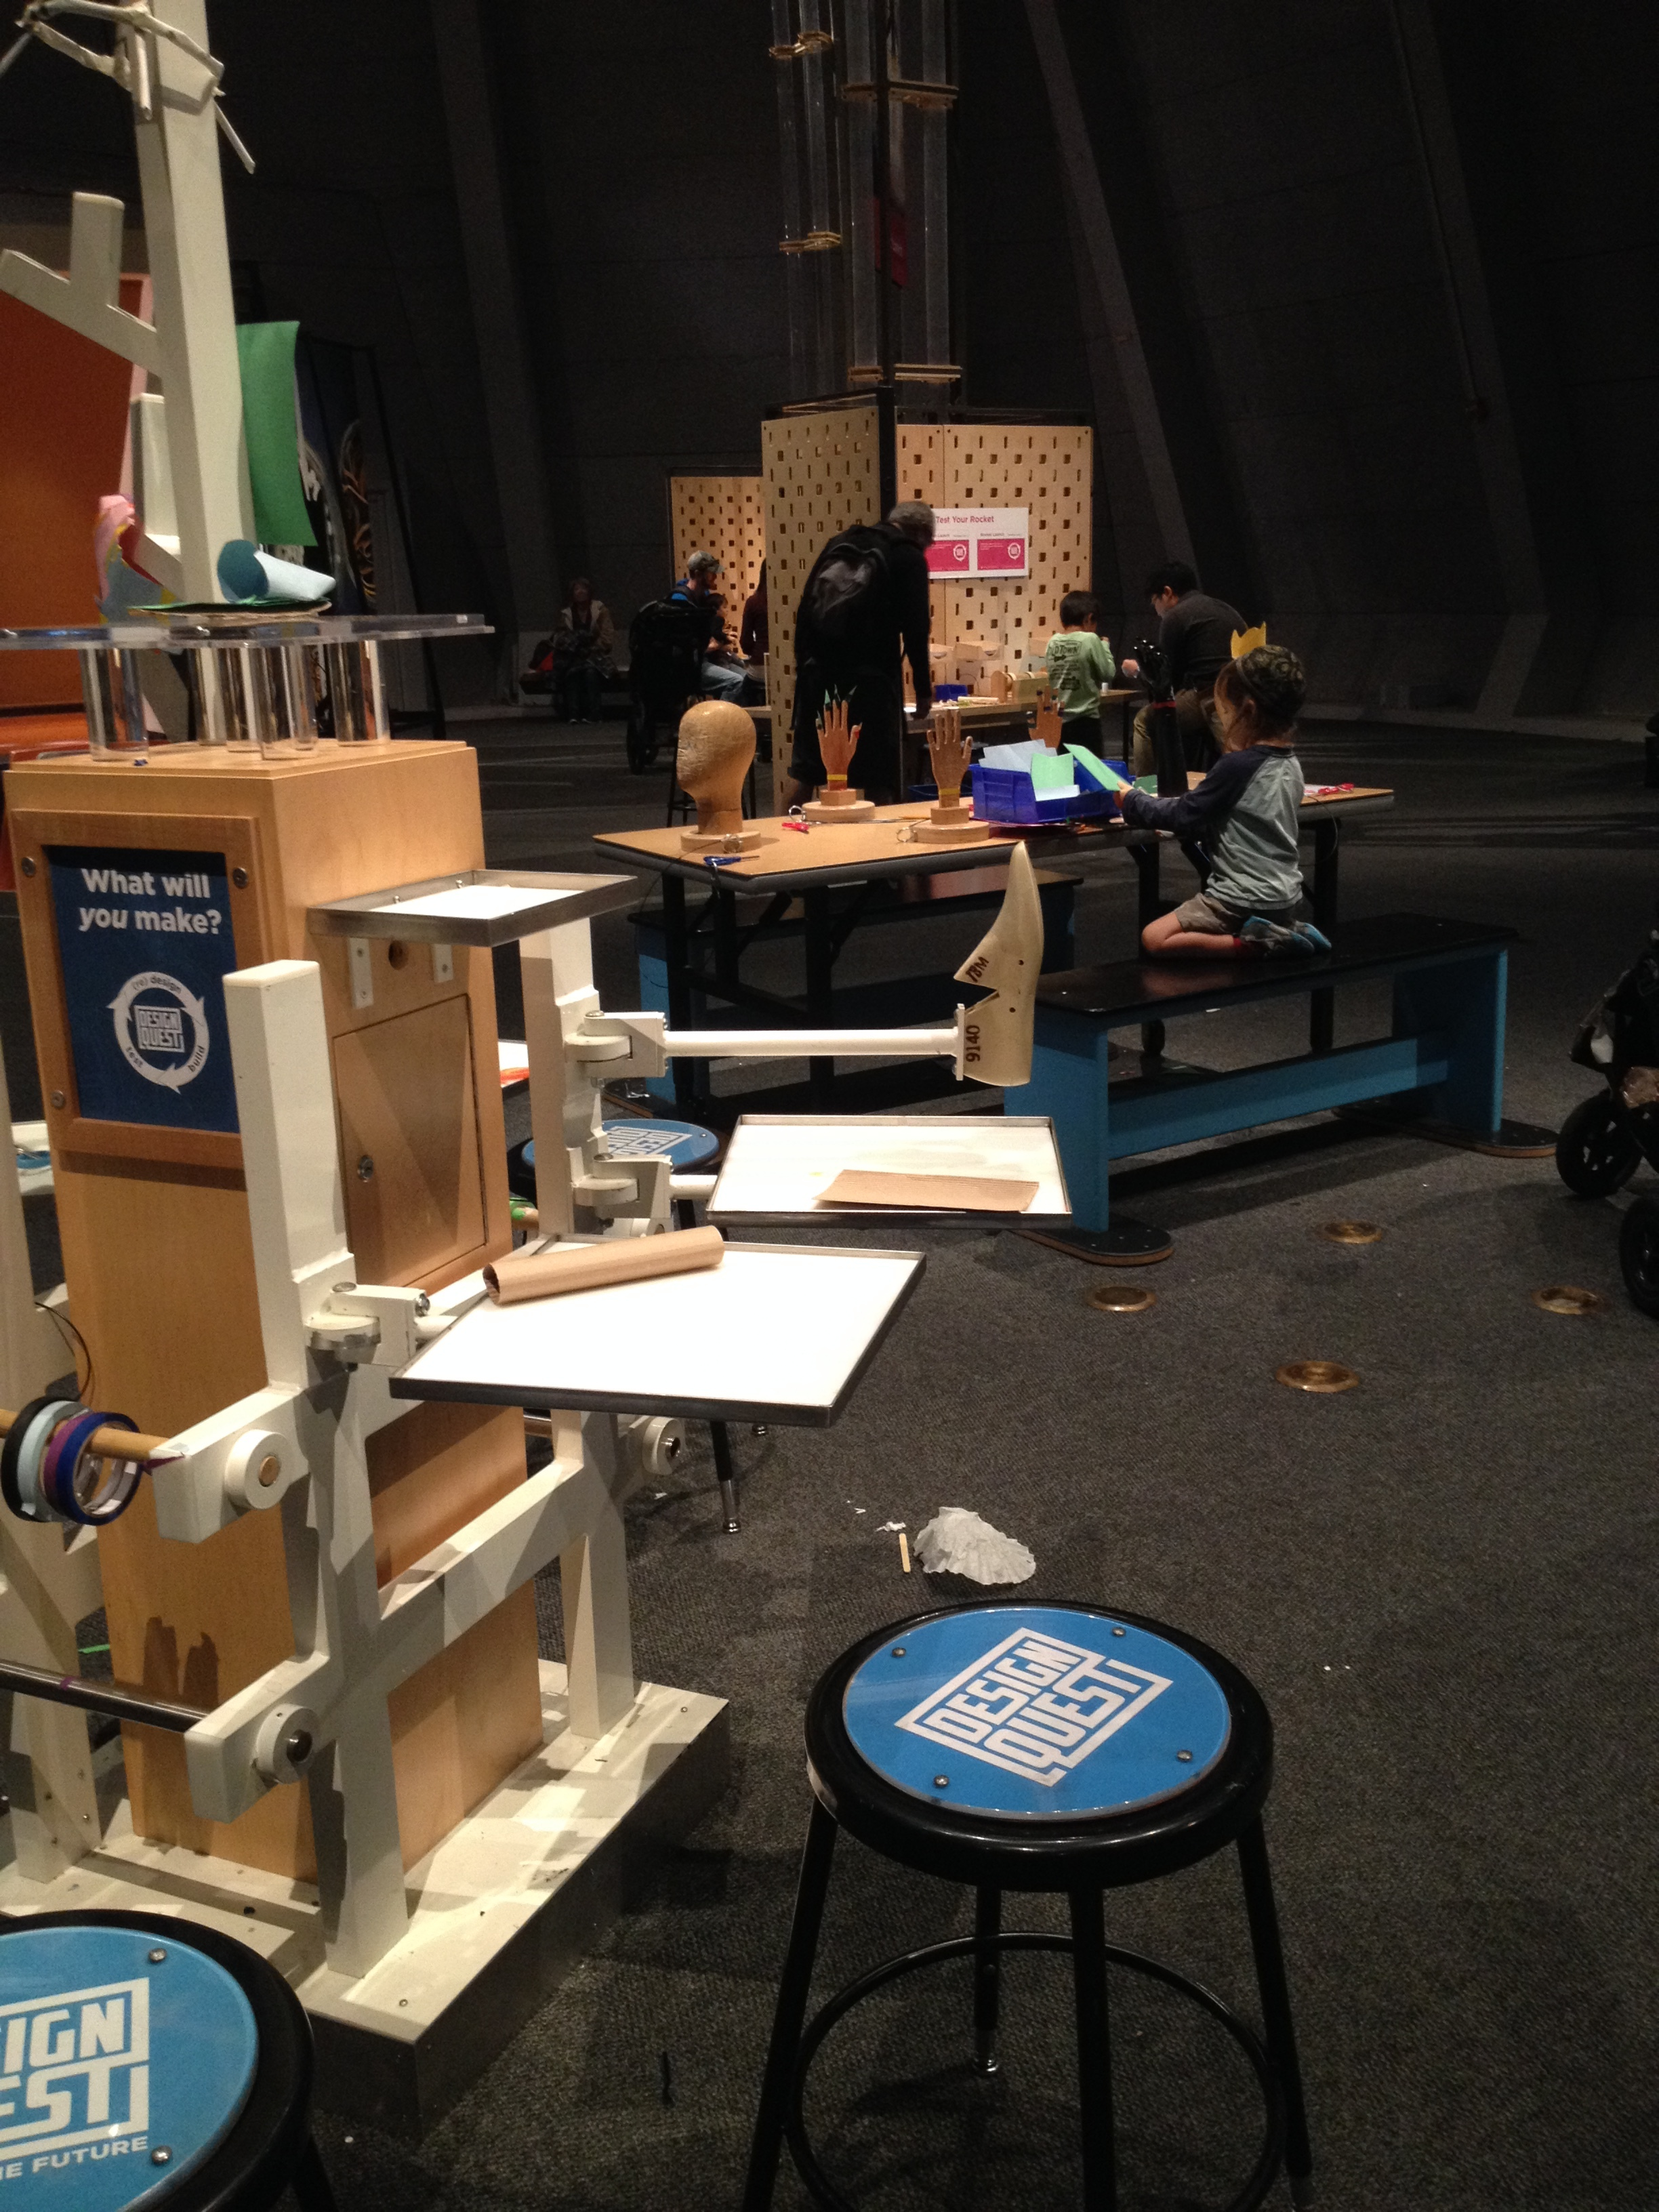 Makerspace at the  Lawrence Hall of Science : What will  you  make?